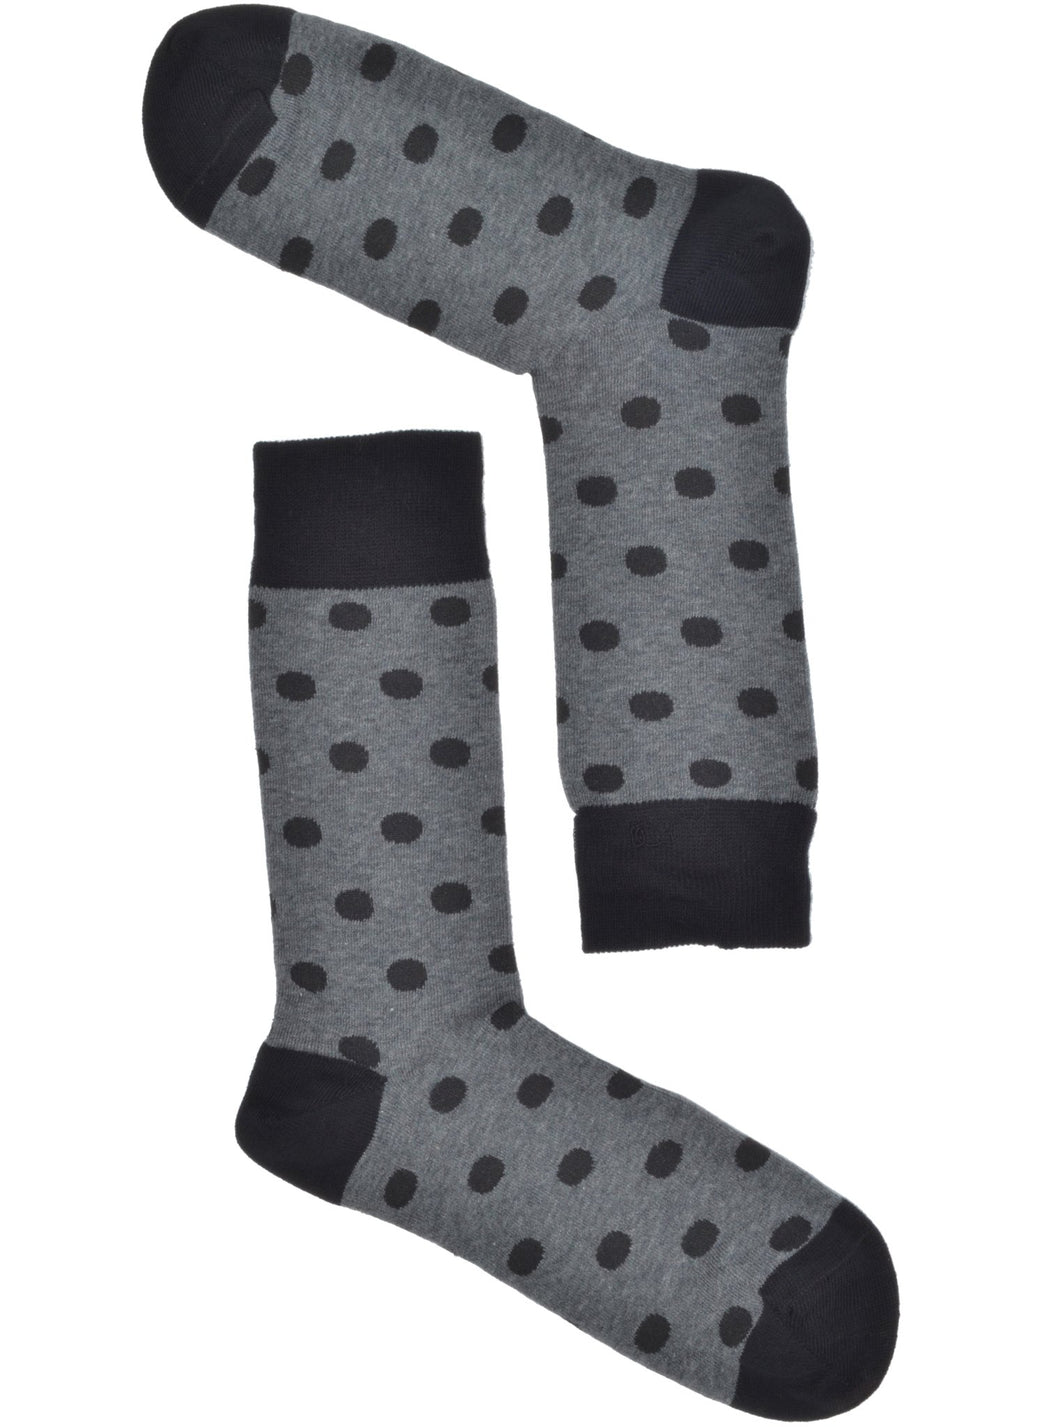 Grey & Black Polkadot Socks